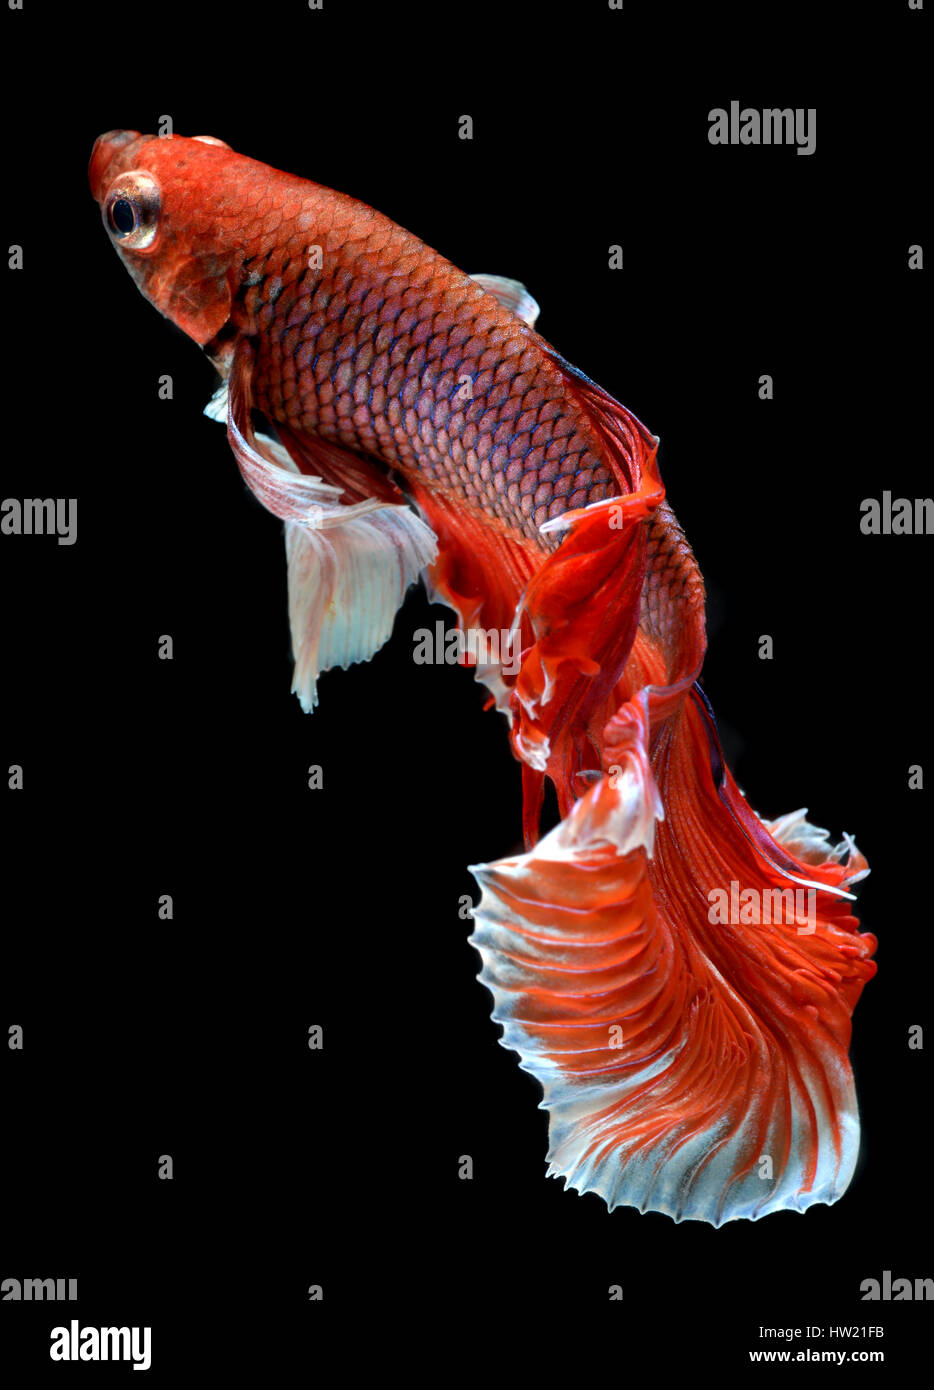 Action of Red haft moon long tail Betta fish or Siamese fighting fish photo in flash studio lighting. Stock Photo